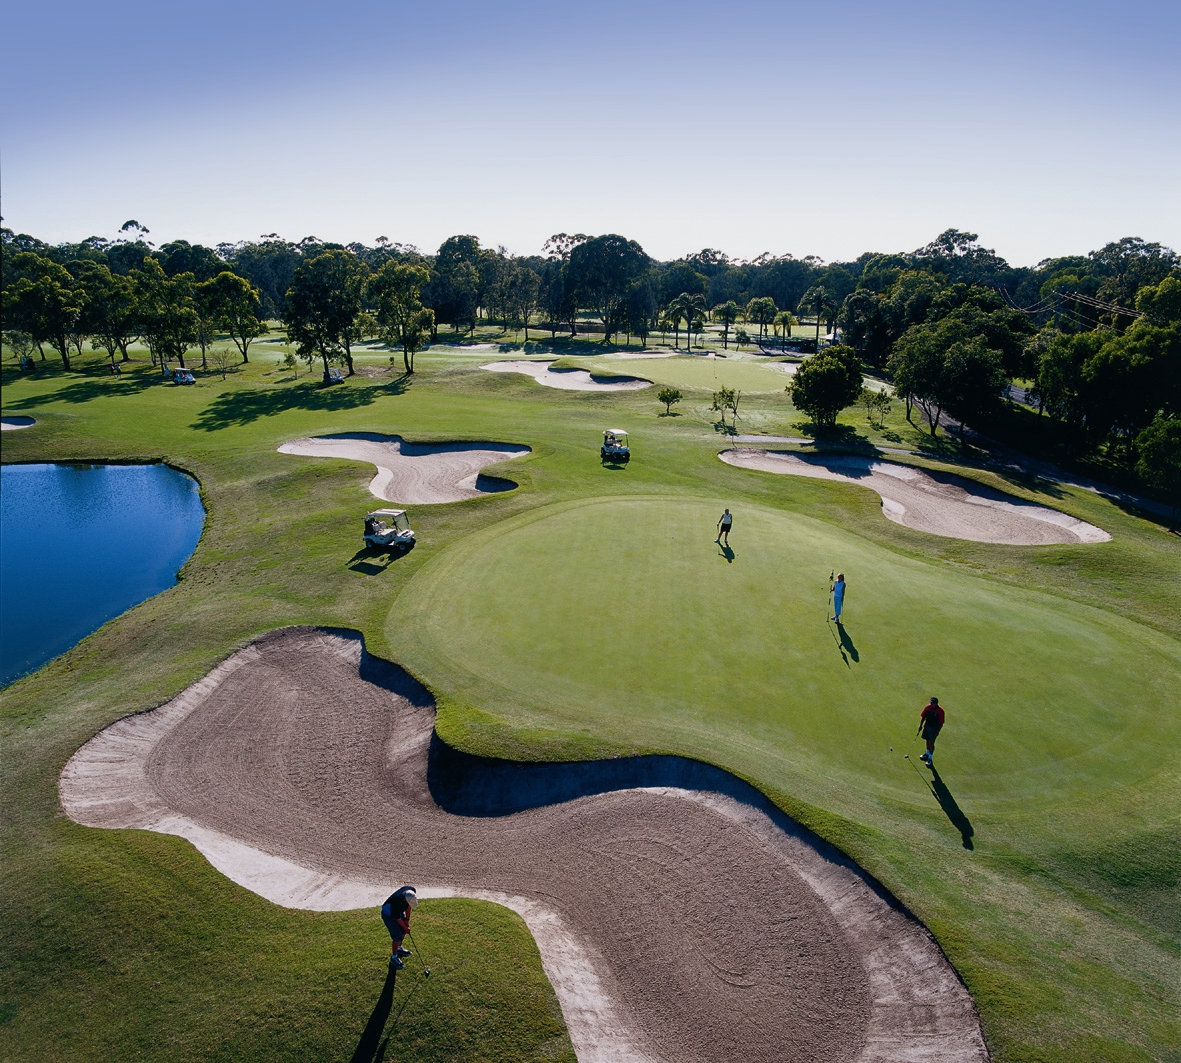 Coolangatta & Tweed Heads Golf Club's 18 hole West Course